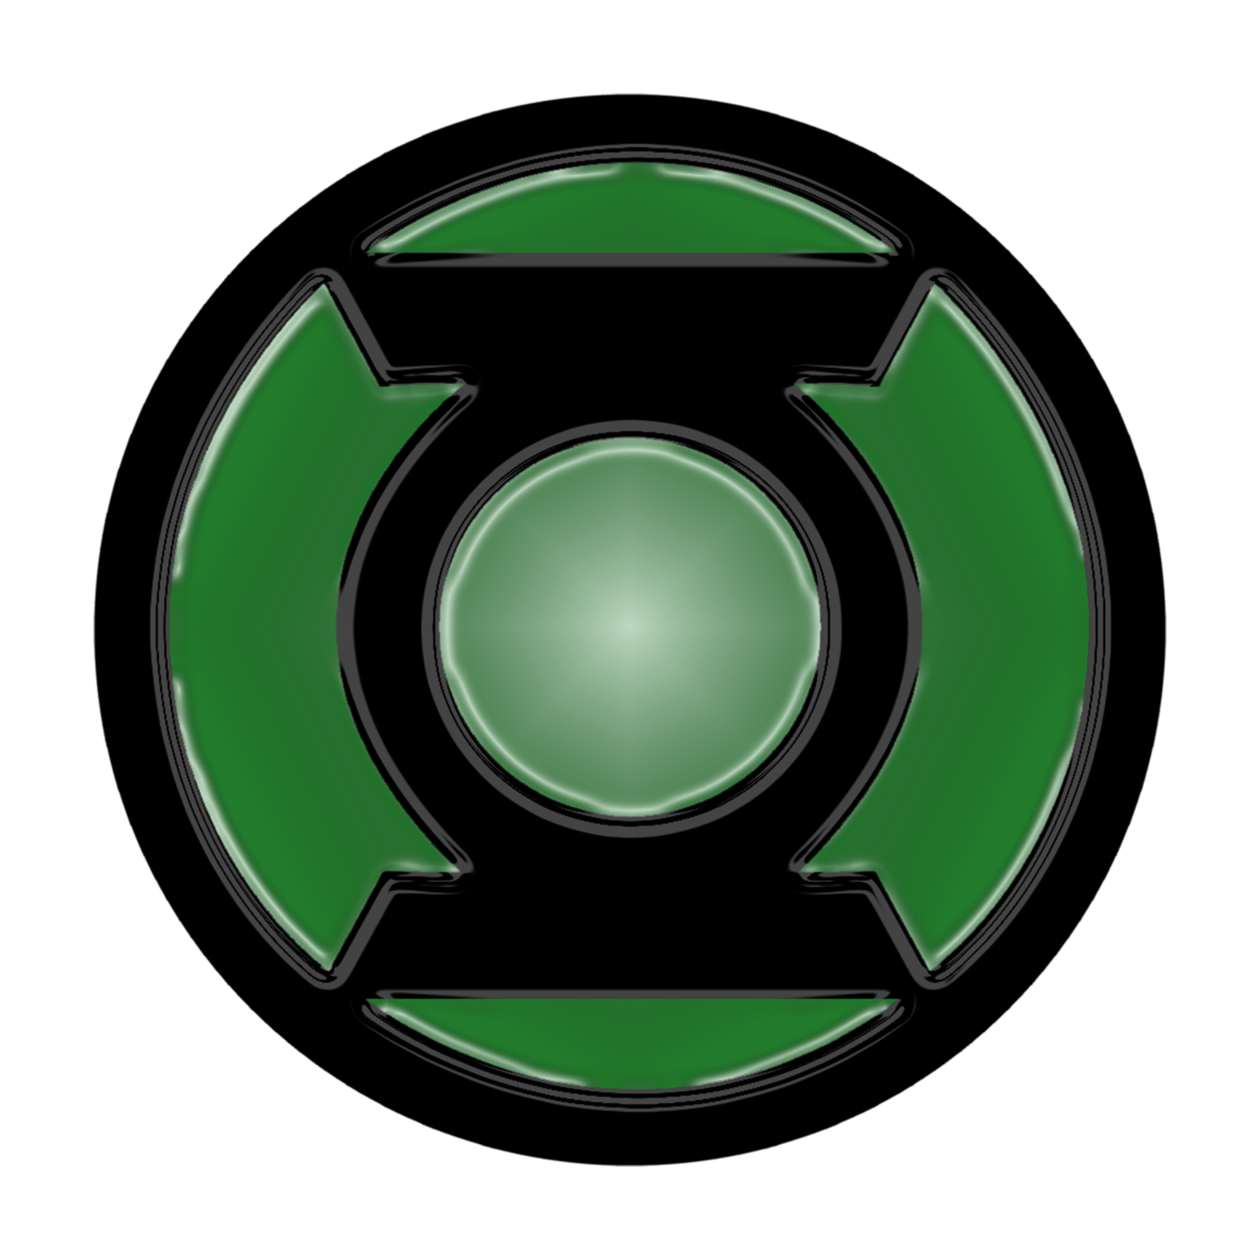 Check Out This Awesome Power Up Green Lantern Design On Teepublic Http Bit Ly 1qbnbcj Green Lantern Green Lantern Ring Lantern Designs